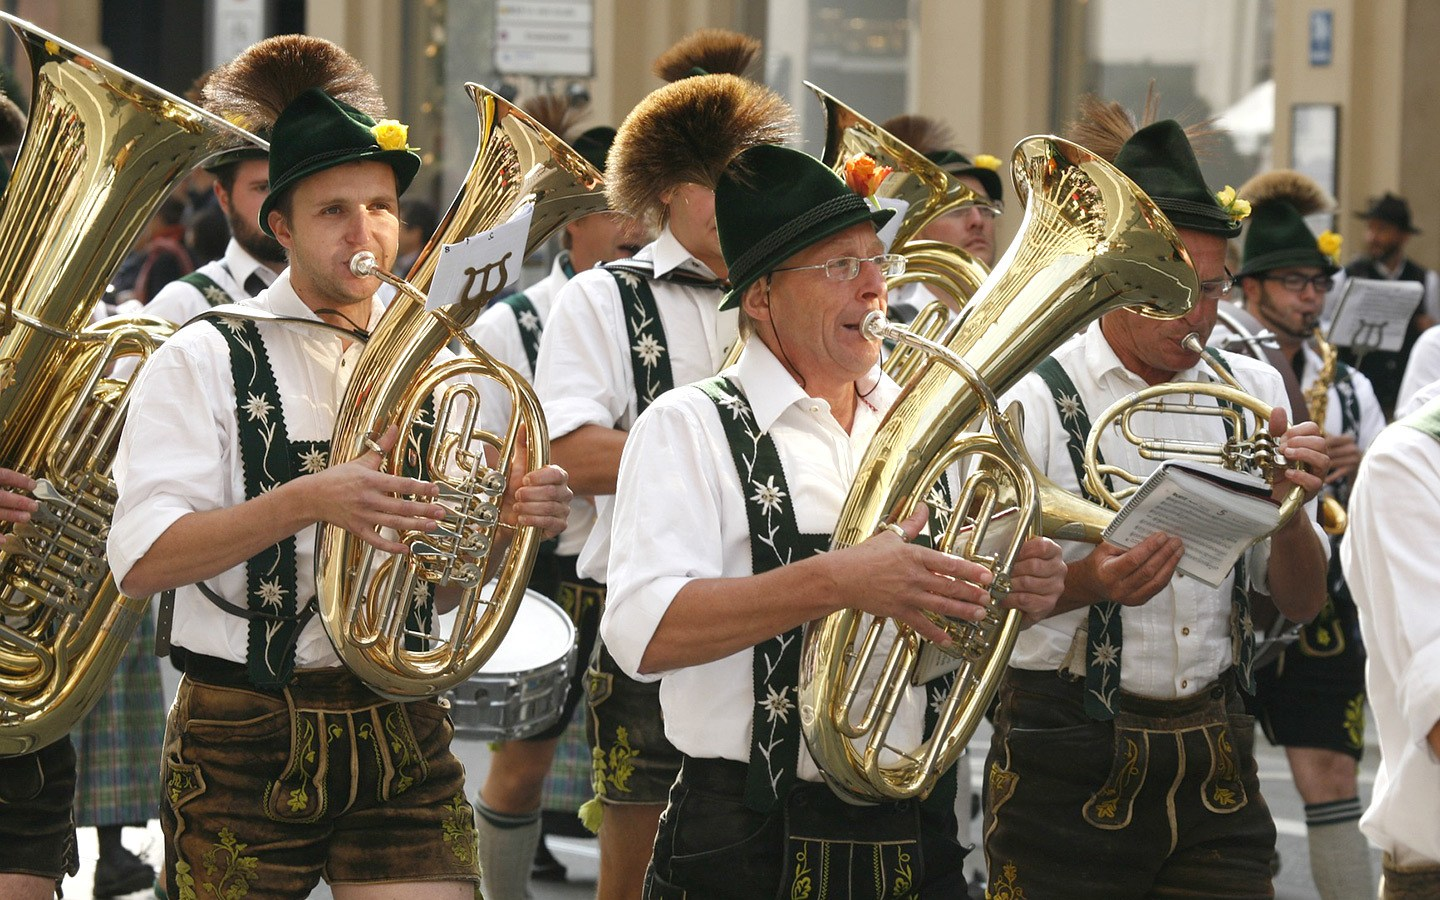 Parades at Munich's Oktoberfest beer festival